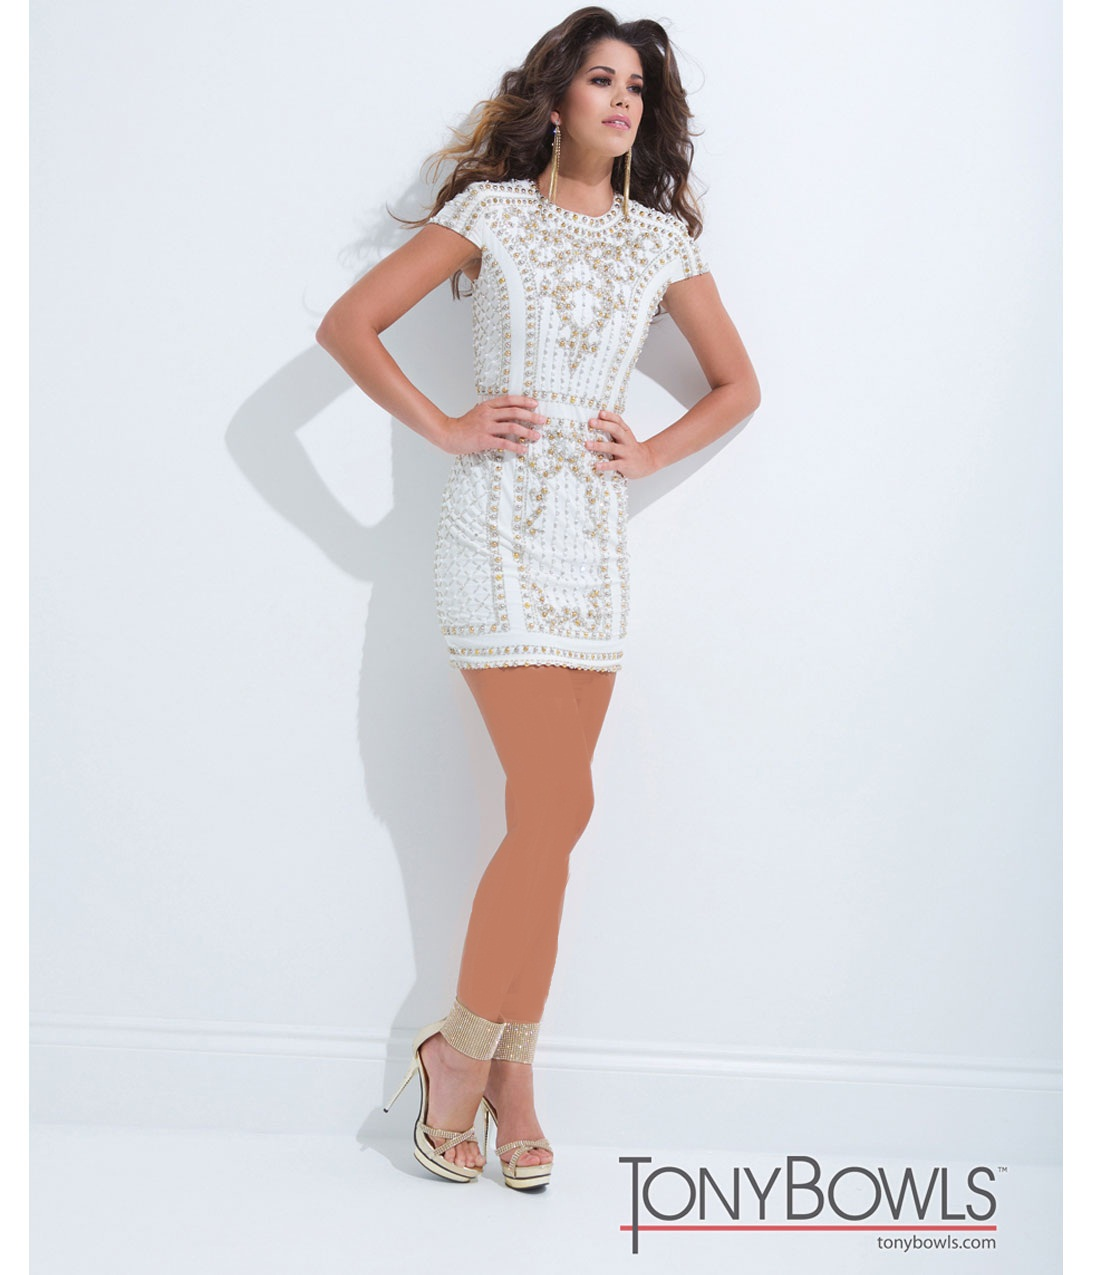 http://www.uplooder.net/img/image/88/acdb4c7cc2432c94a765115985a05411/white-gold-jersey-short-prom-dress-38506larger.jpg